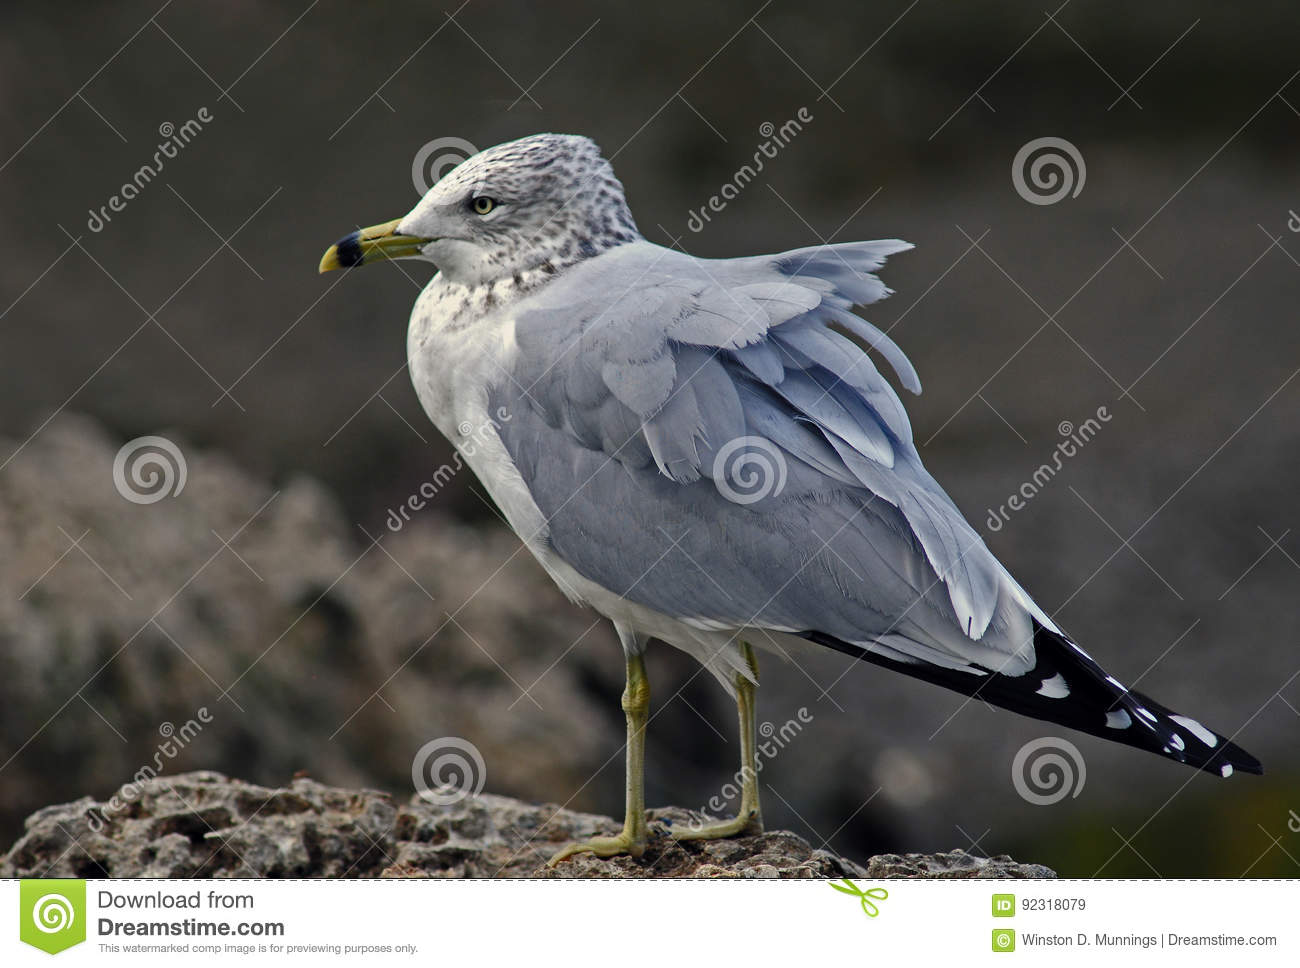 Seagull Stock Image Image Of Birds Particularly Have 92318079